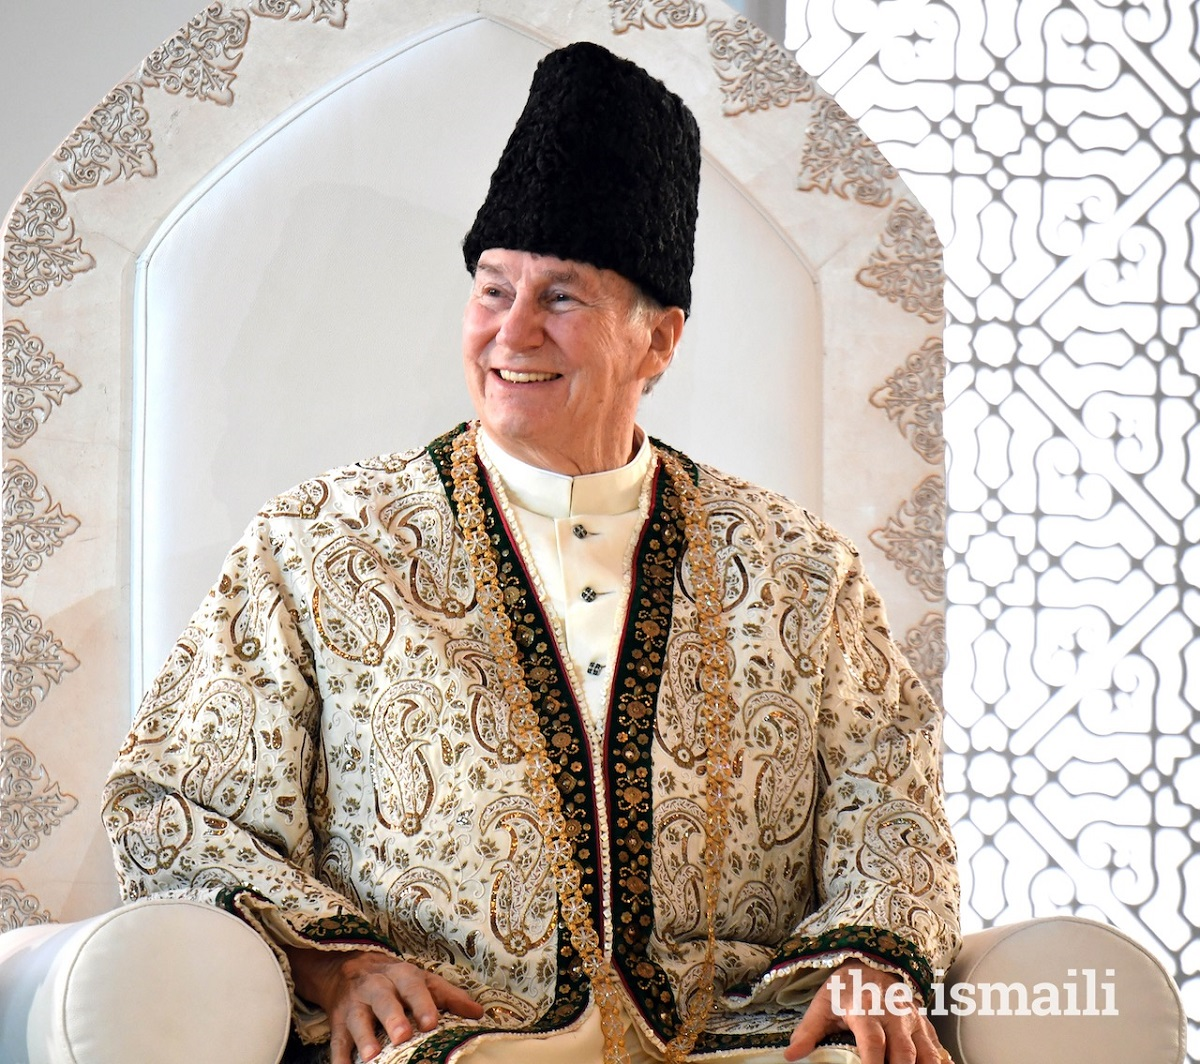 Mawlana Hazar Imam, His Highness the Aga Khan, sends Talika Mubarak to Ismailis around the world  on the occasion of his 63rd Imamat Day